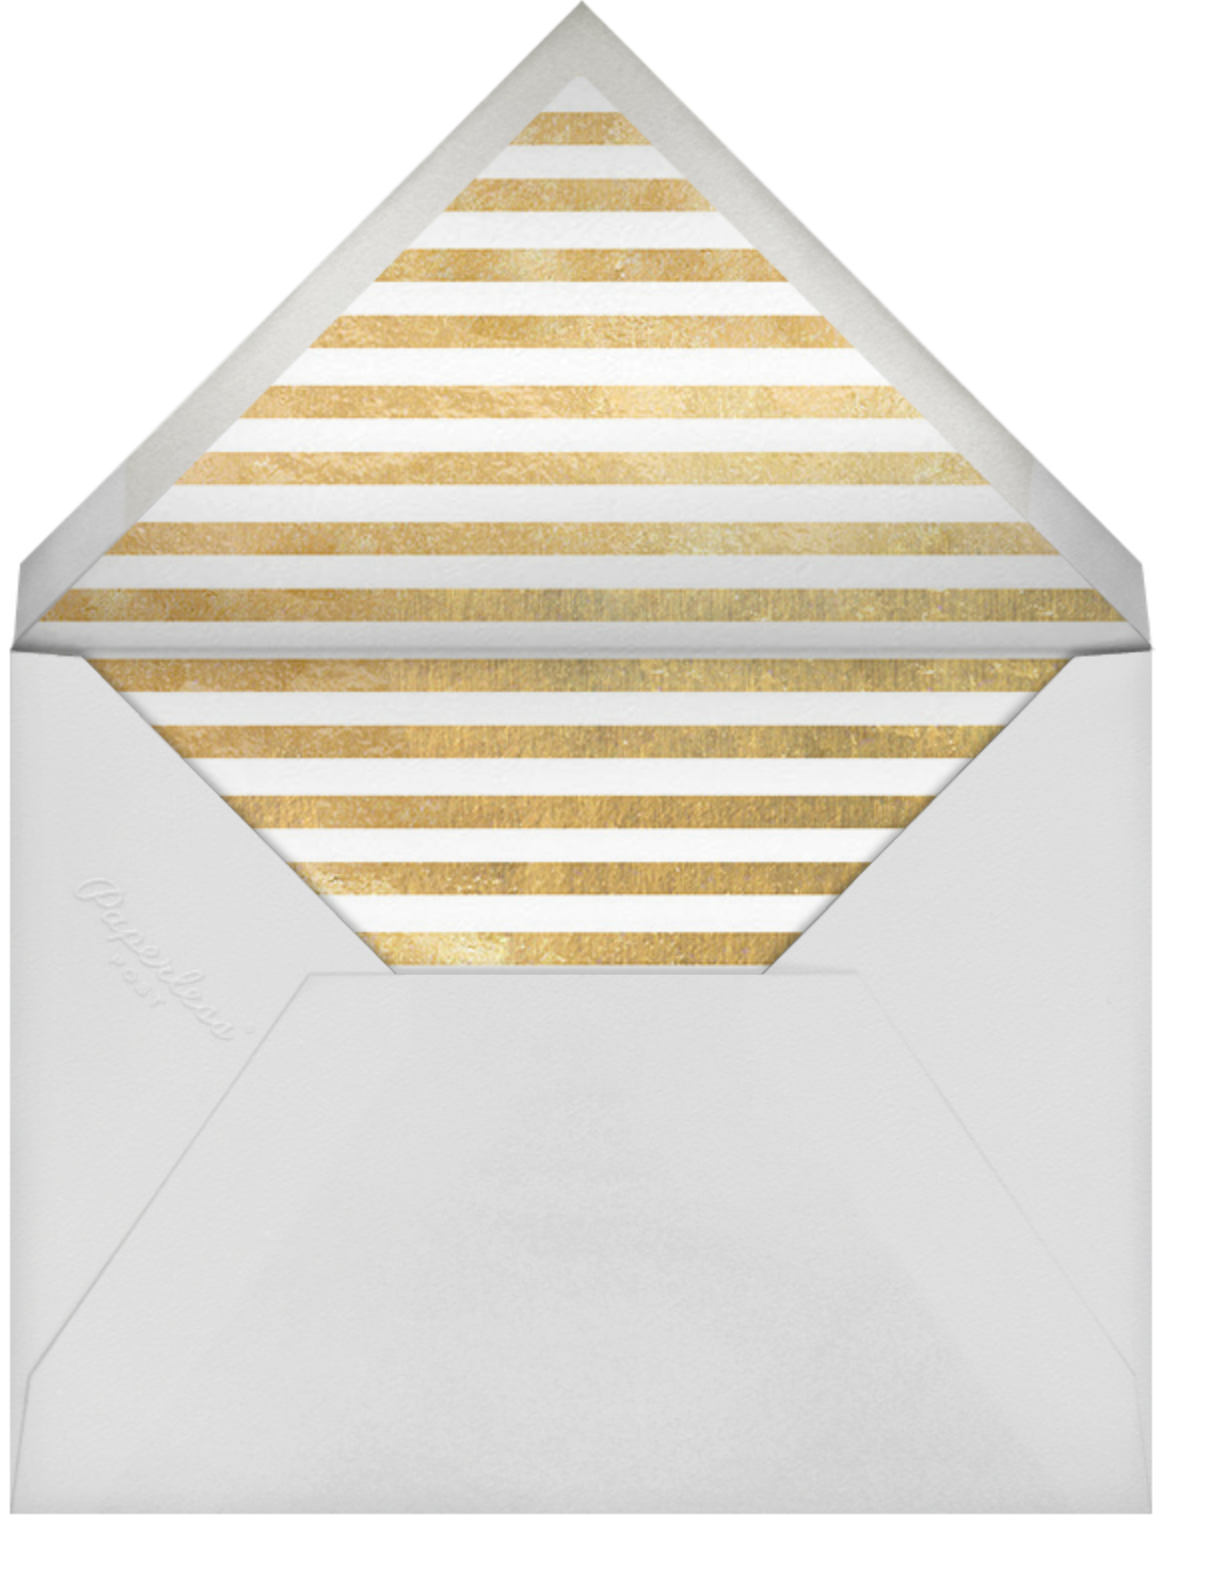 Confetti (Tall) - Blush/Gold - kate spade new york - Adult birthday - envelope back